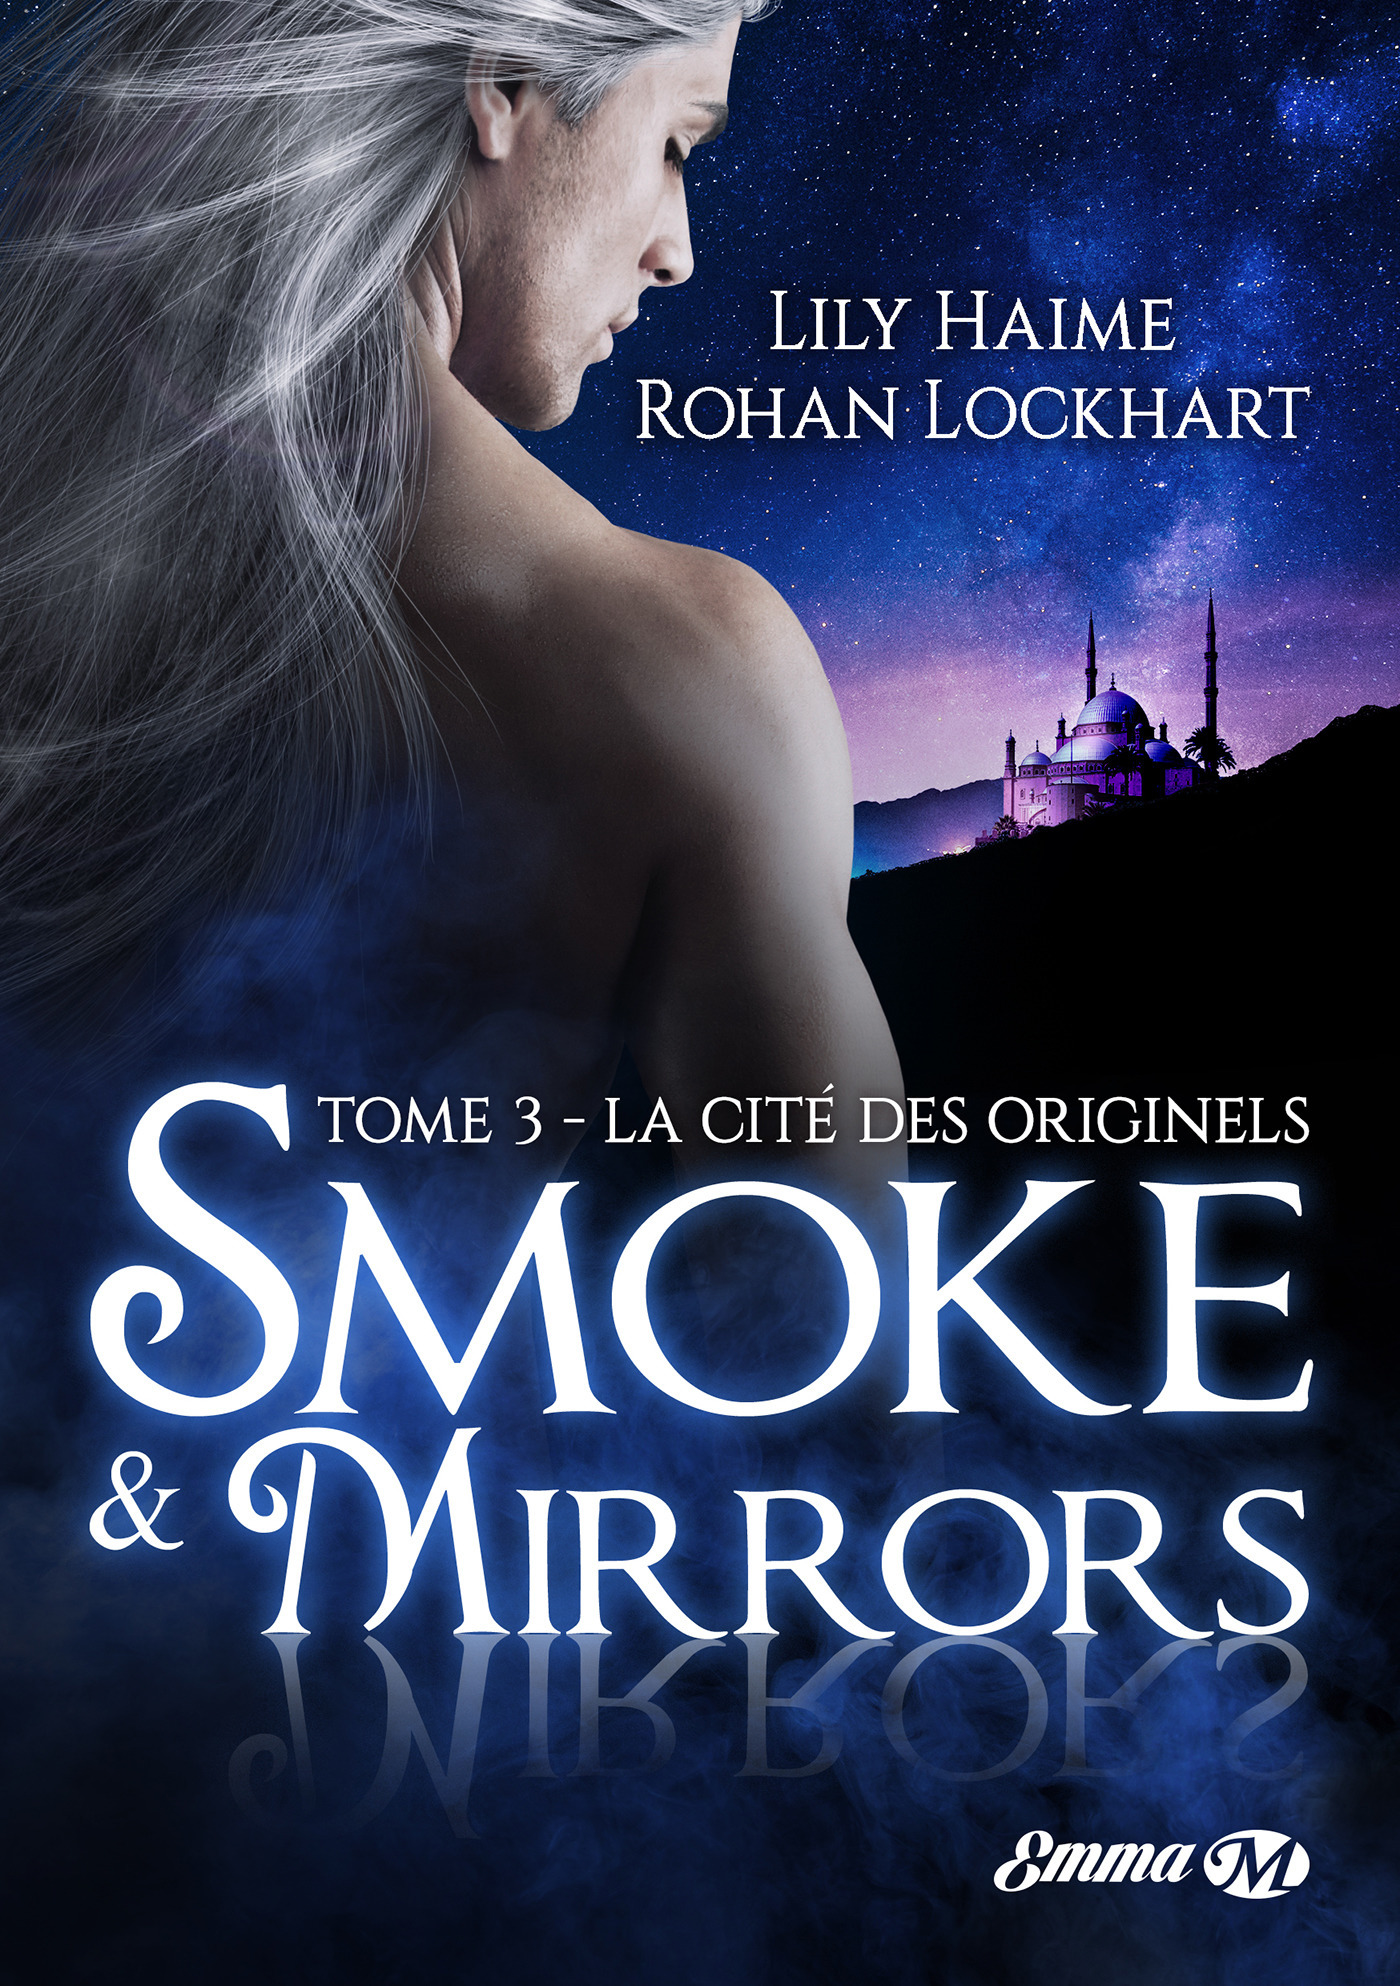 Smoke and mirrors, t3: la cite des originels